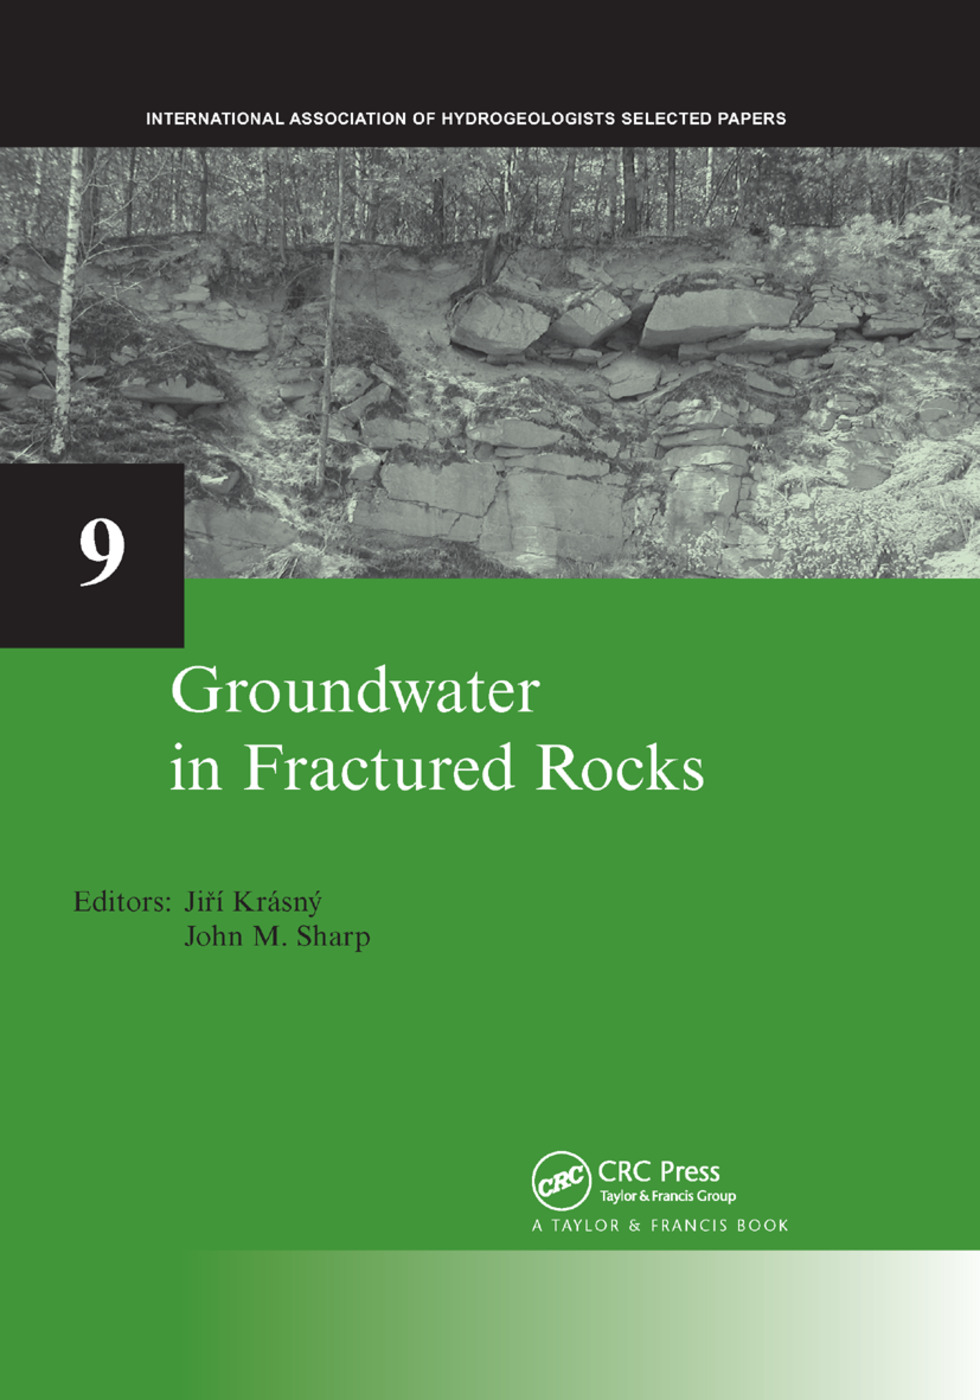 Hard rock aquifers characterization prior to modelling at catchment scale: an application to India